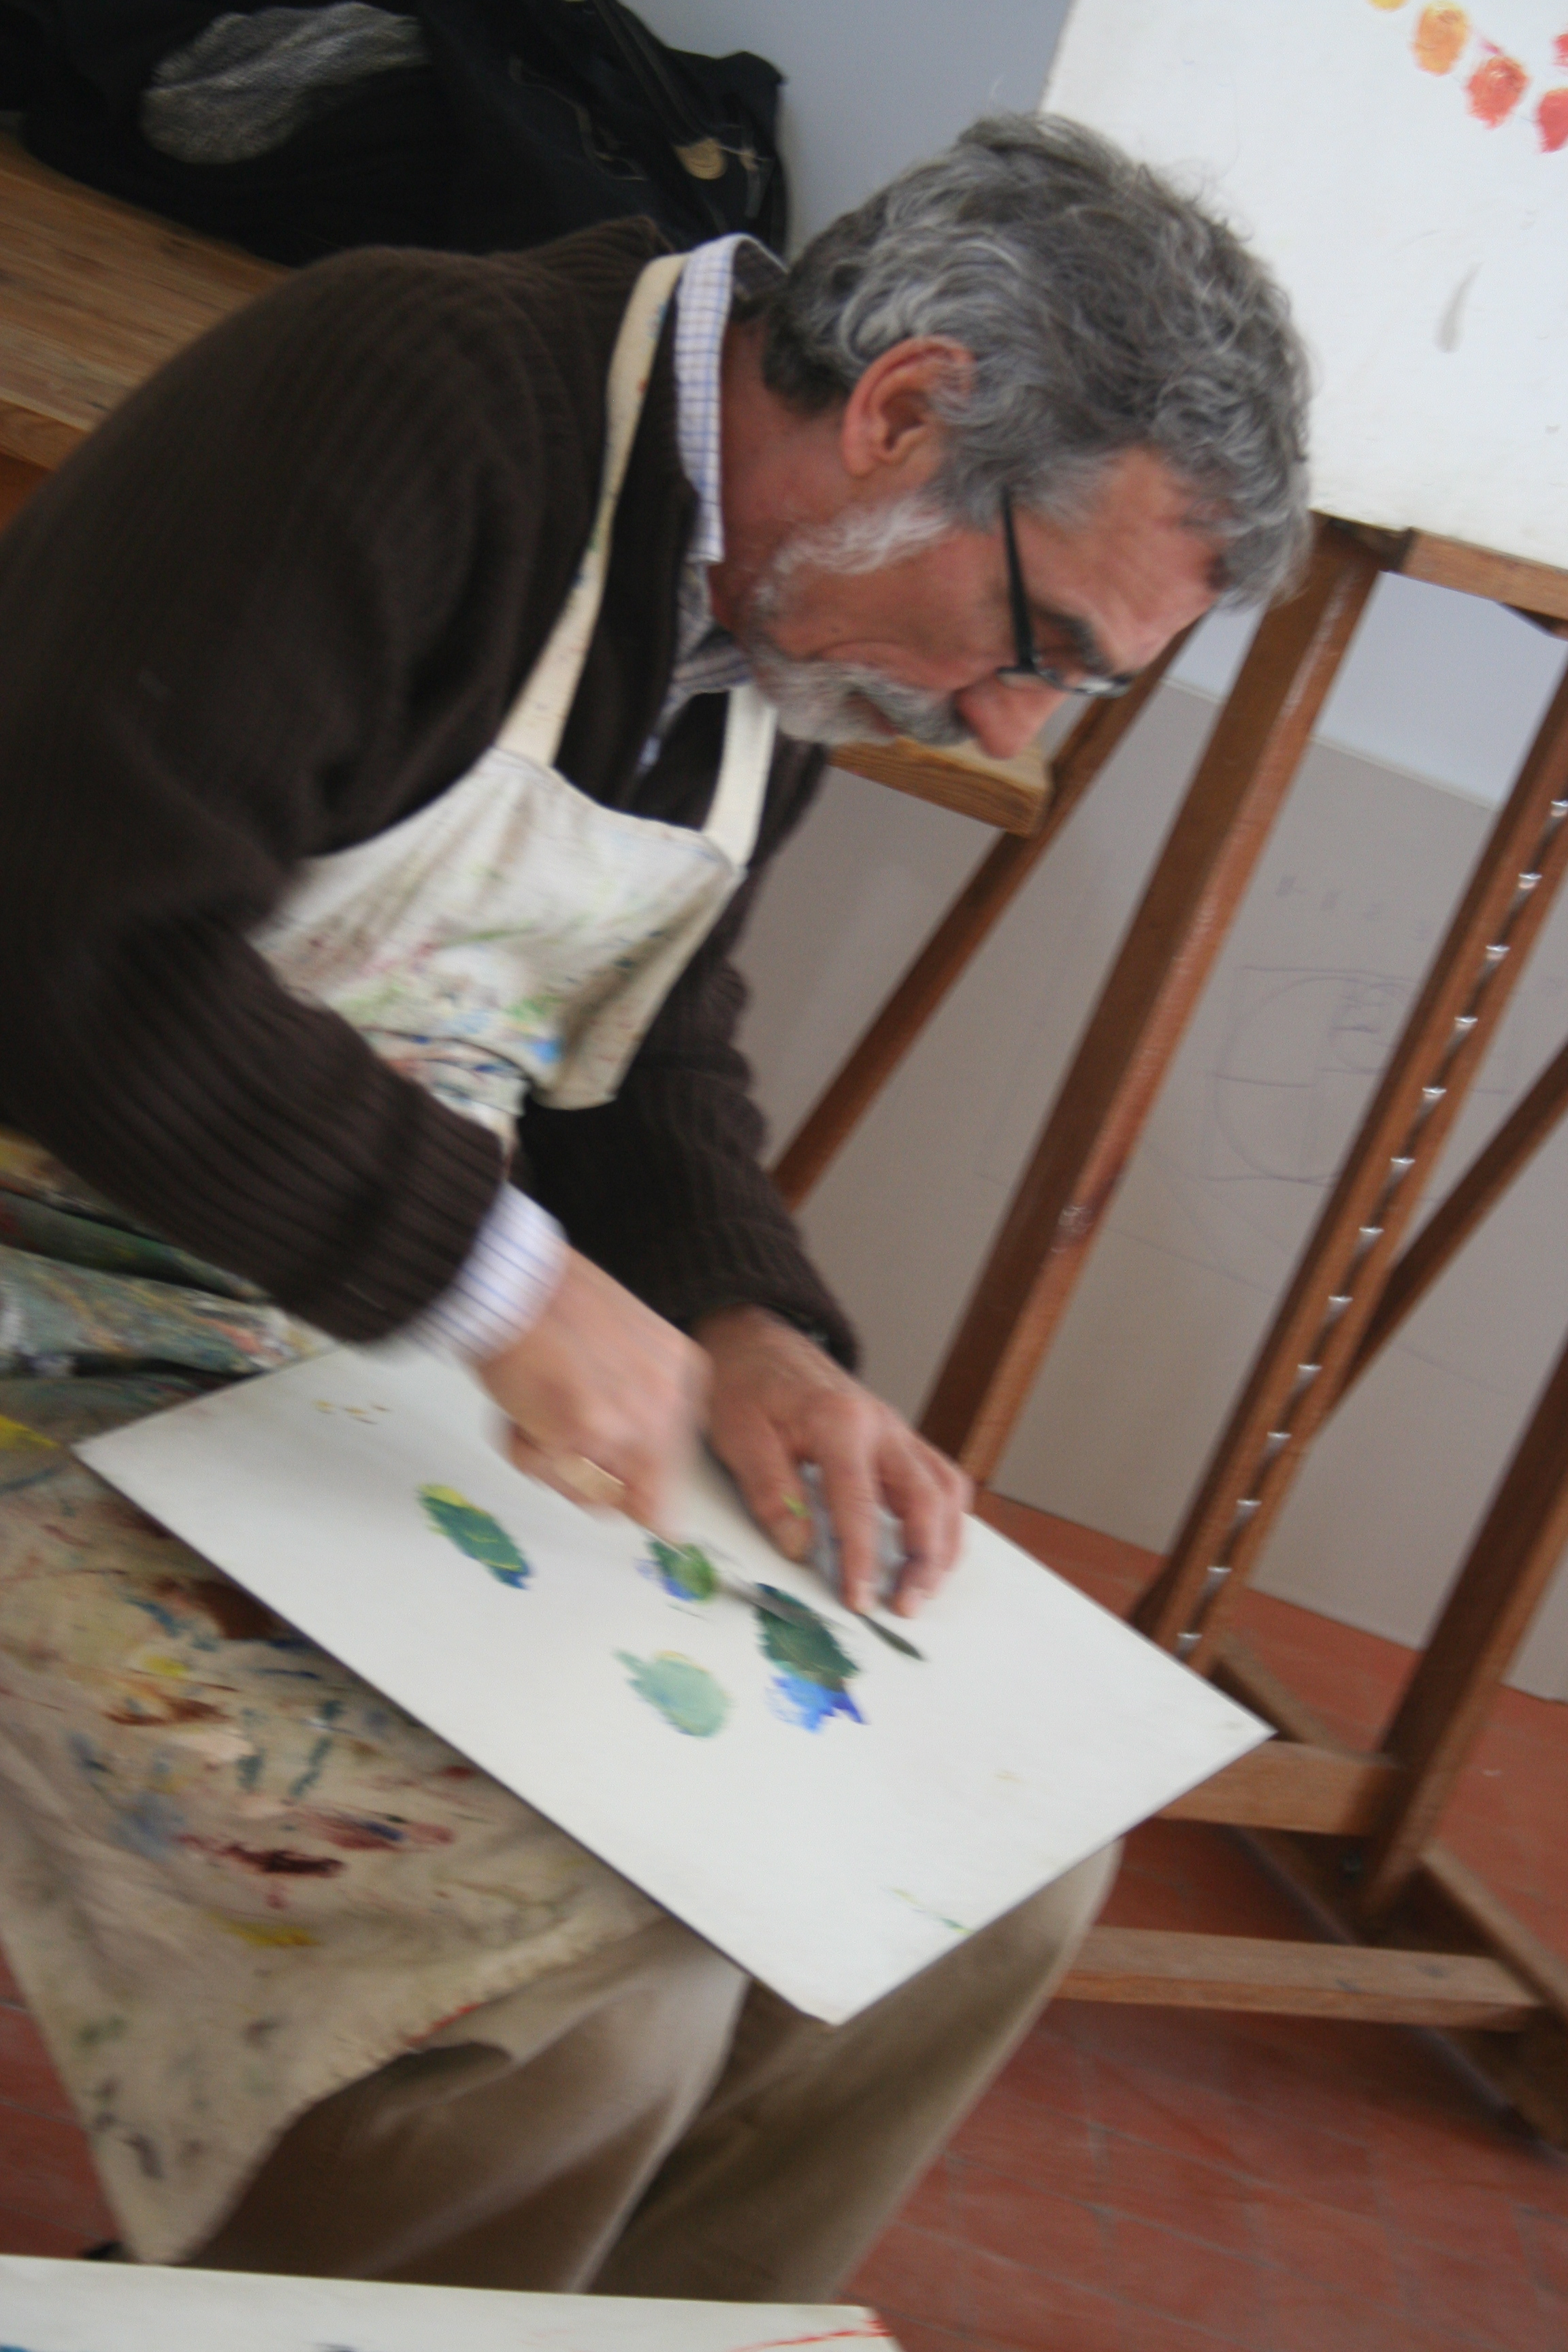 Alan breaks his green with its complement to get the color of the olive leaf